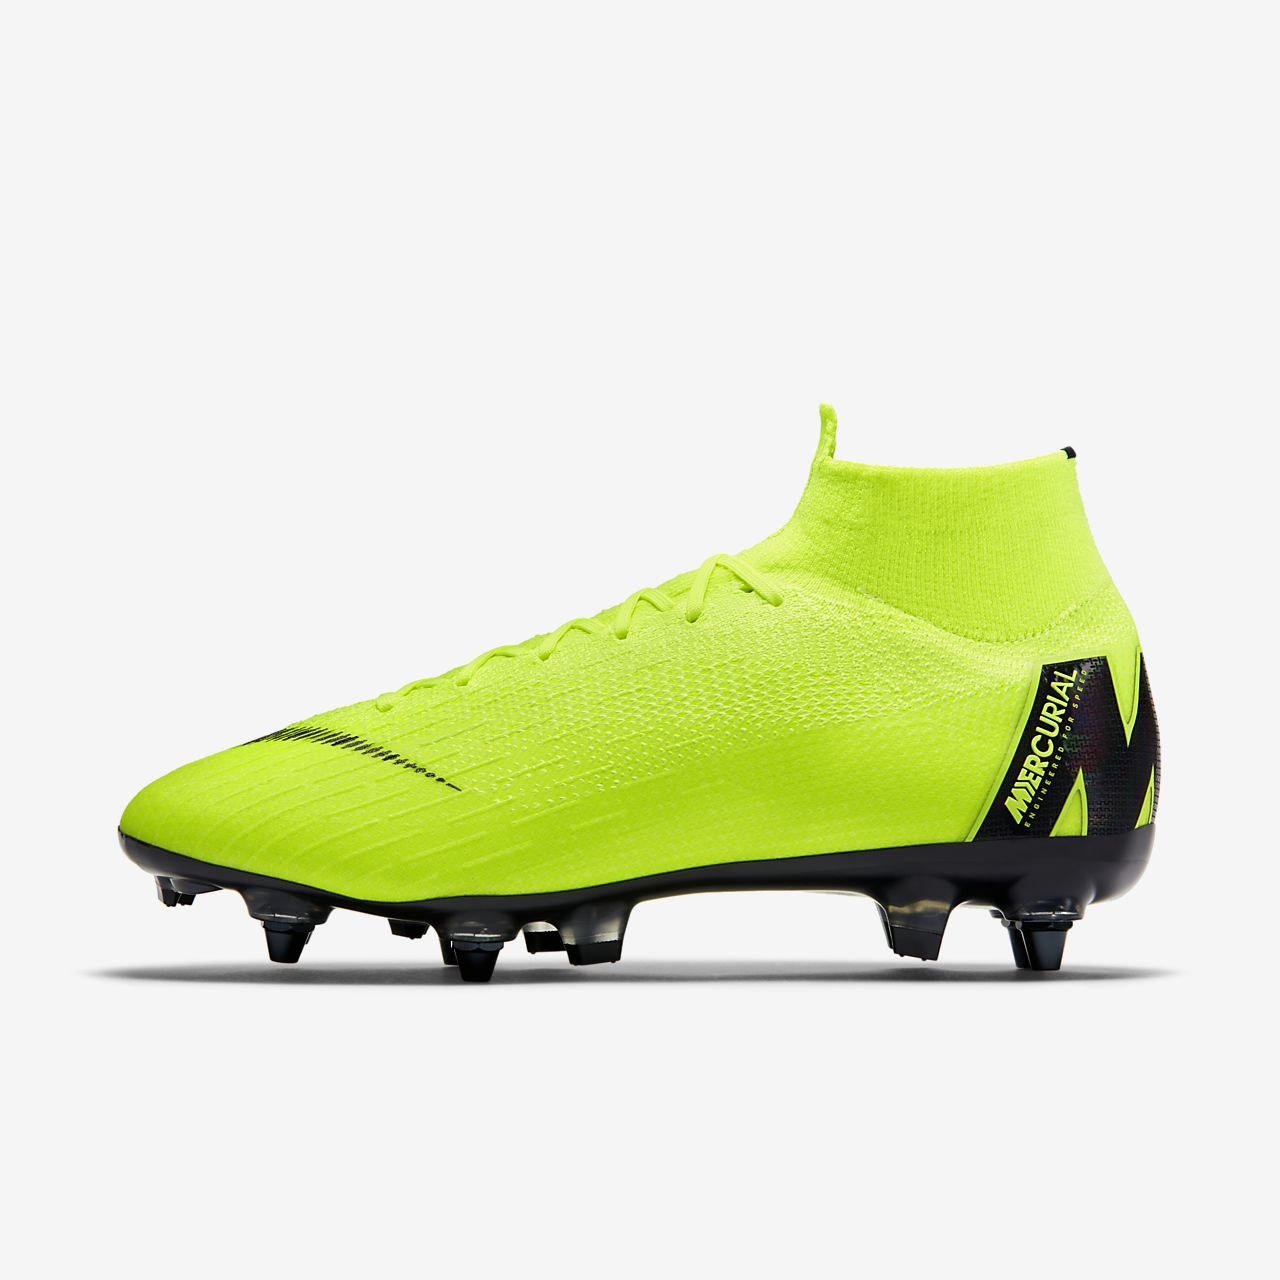 306ff29dda Nike Mercurial Superfly 360 Elite SG-PRO Anti-Clog Soft-Ground ...